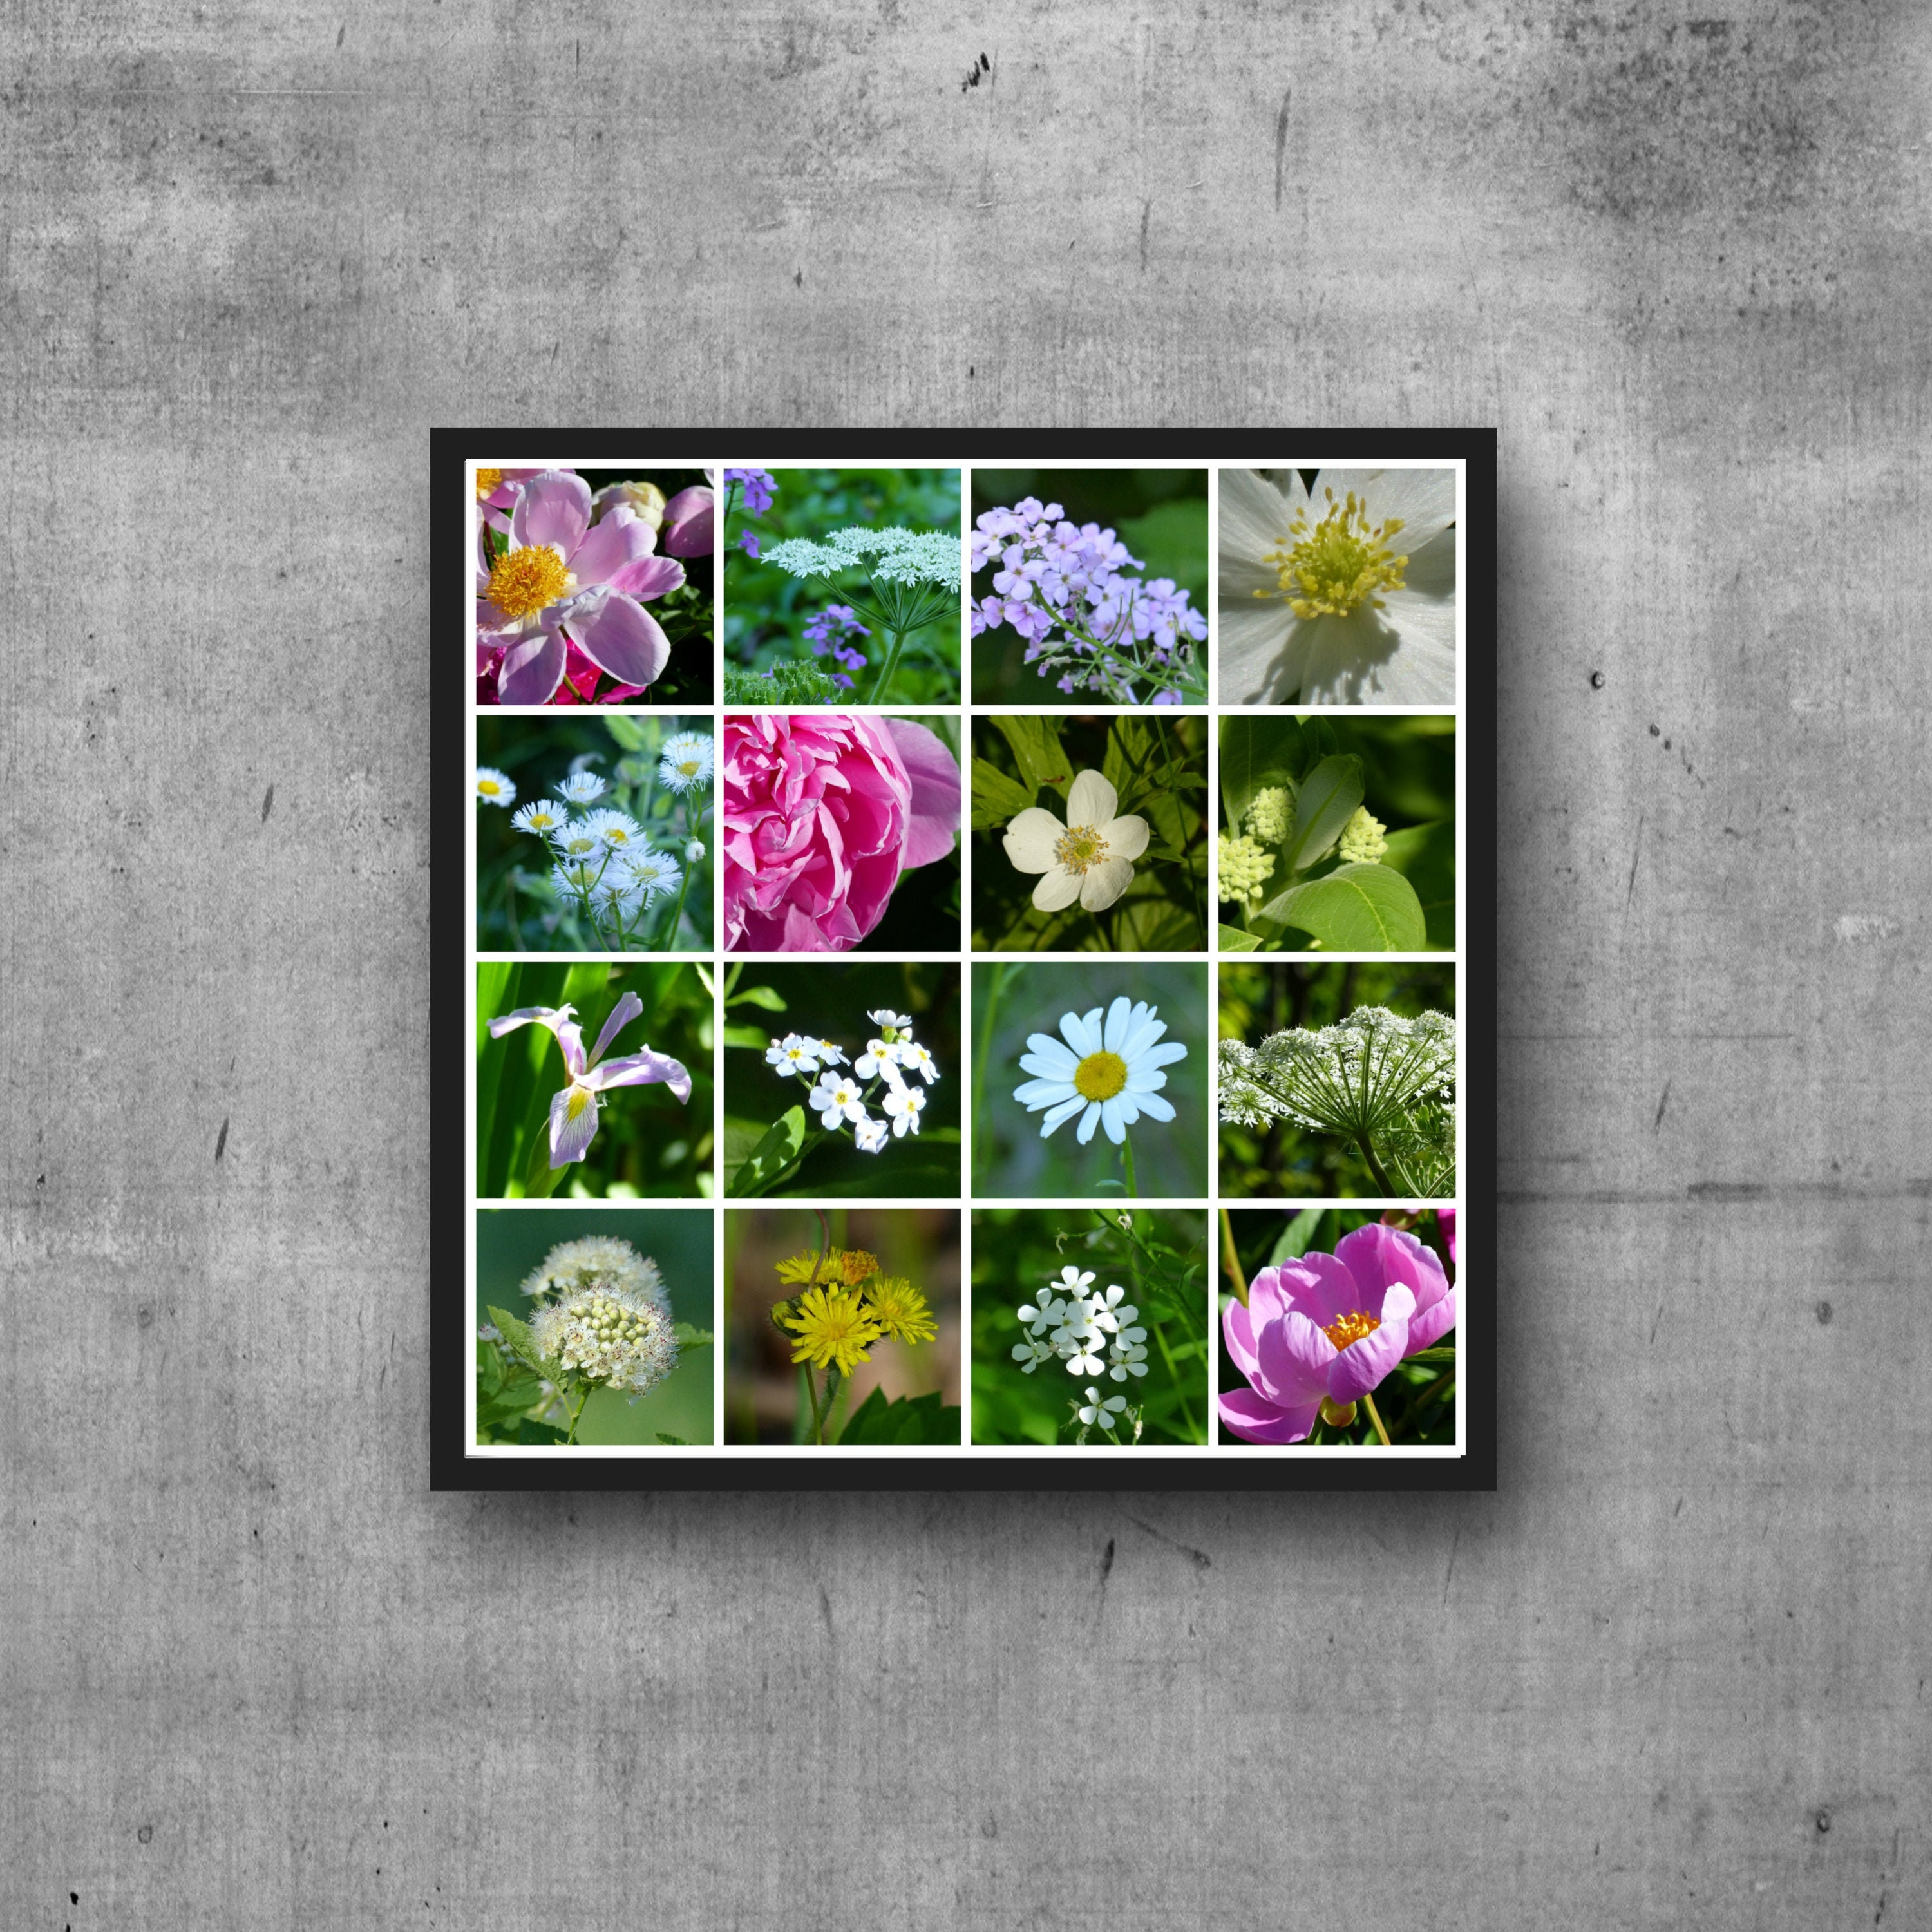 Michigan Wildflowers Flower Pictures Nature Photography Garden Decor Flower Collage Green Grass Photo Print Spring Images Green Art